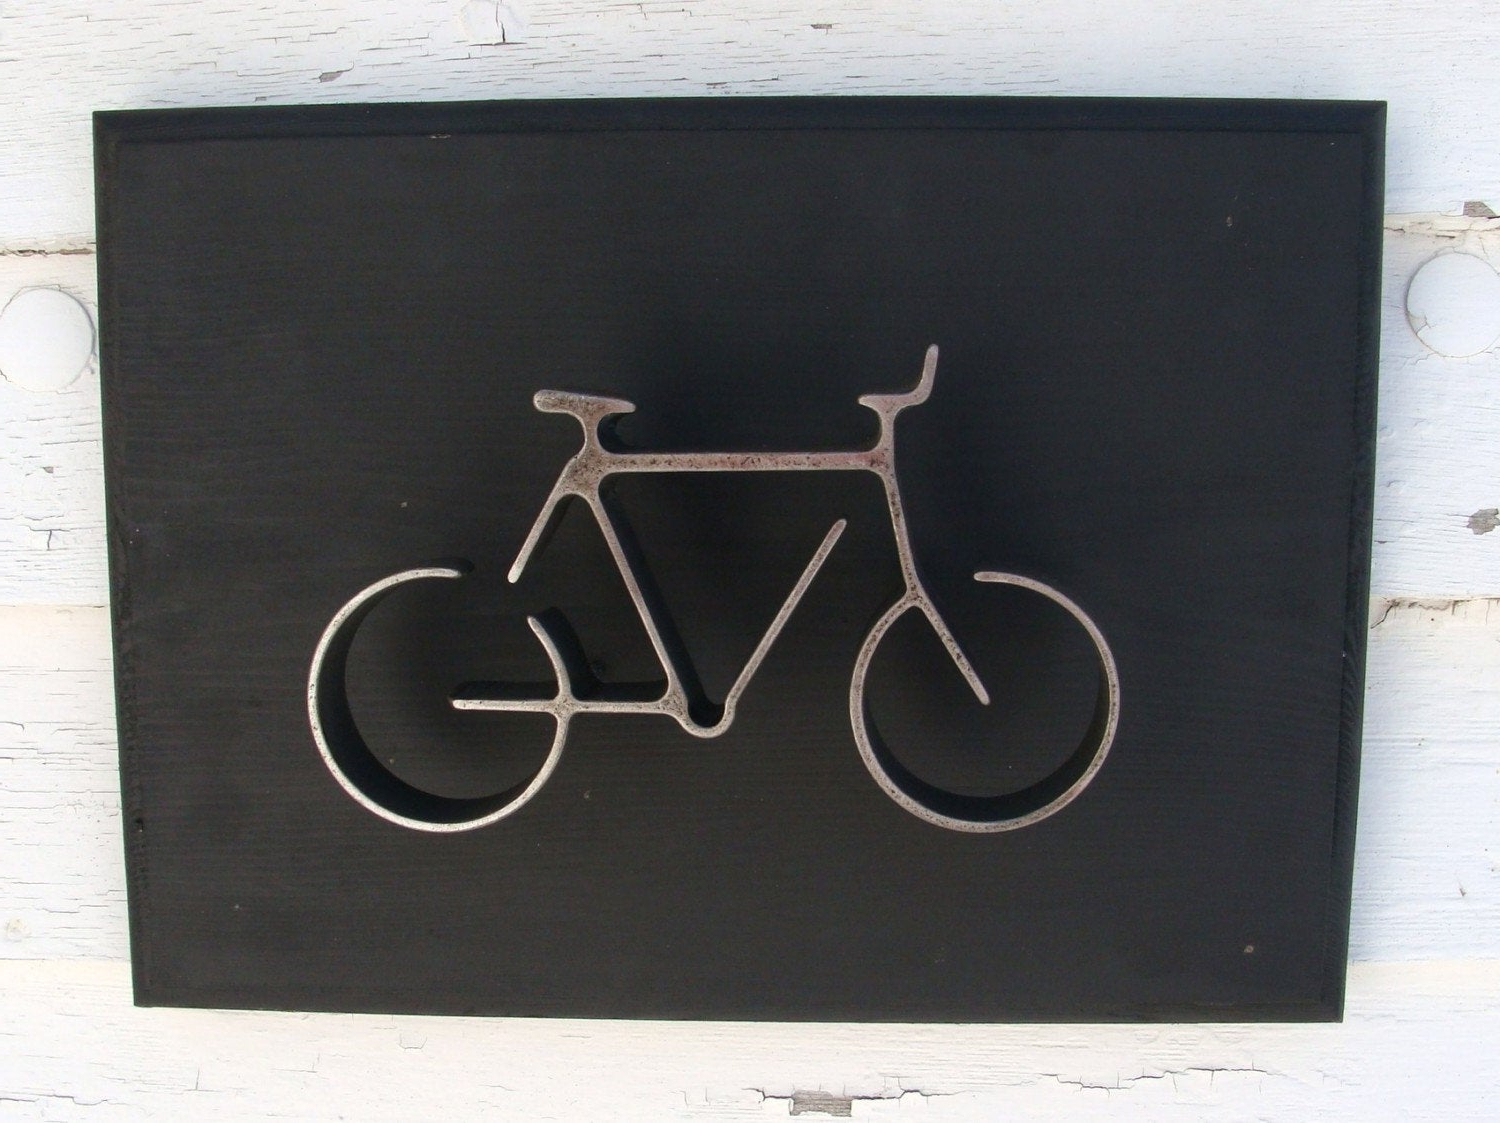 Metal Bicycle Wall Decor For Popular Metal Bicycle Wall Decor Bike Wall Art Home Decor Bicycle (Gallery 14 of 20)